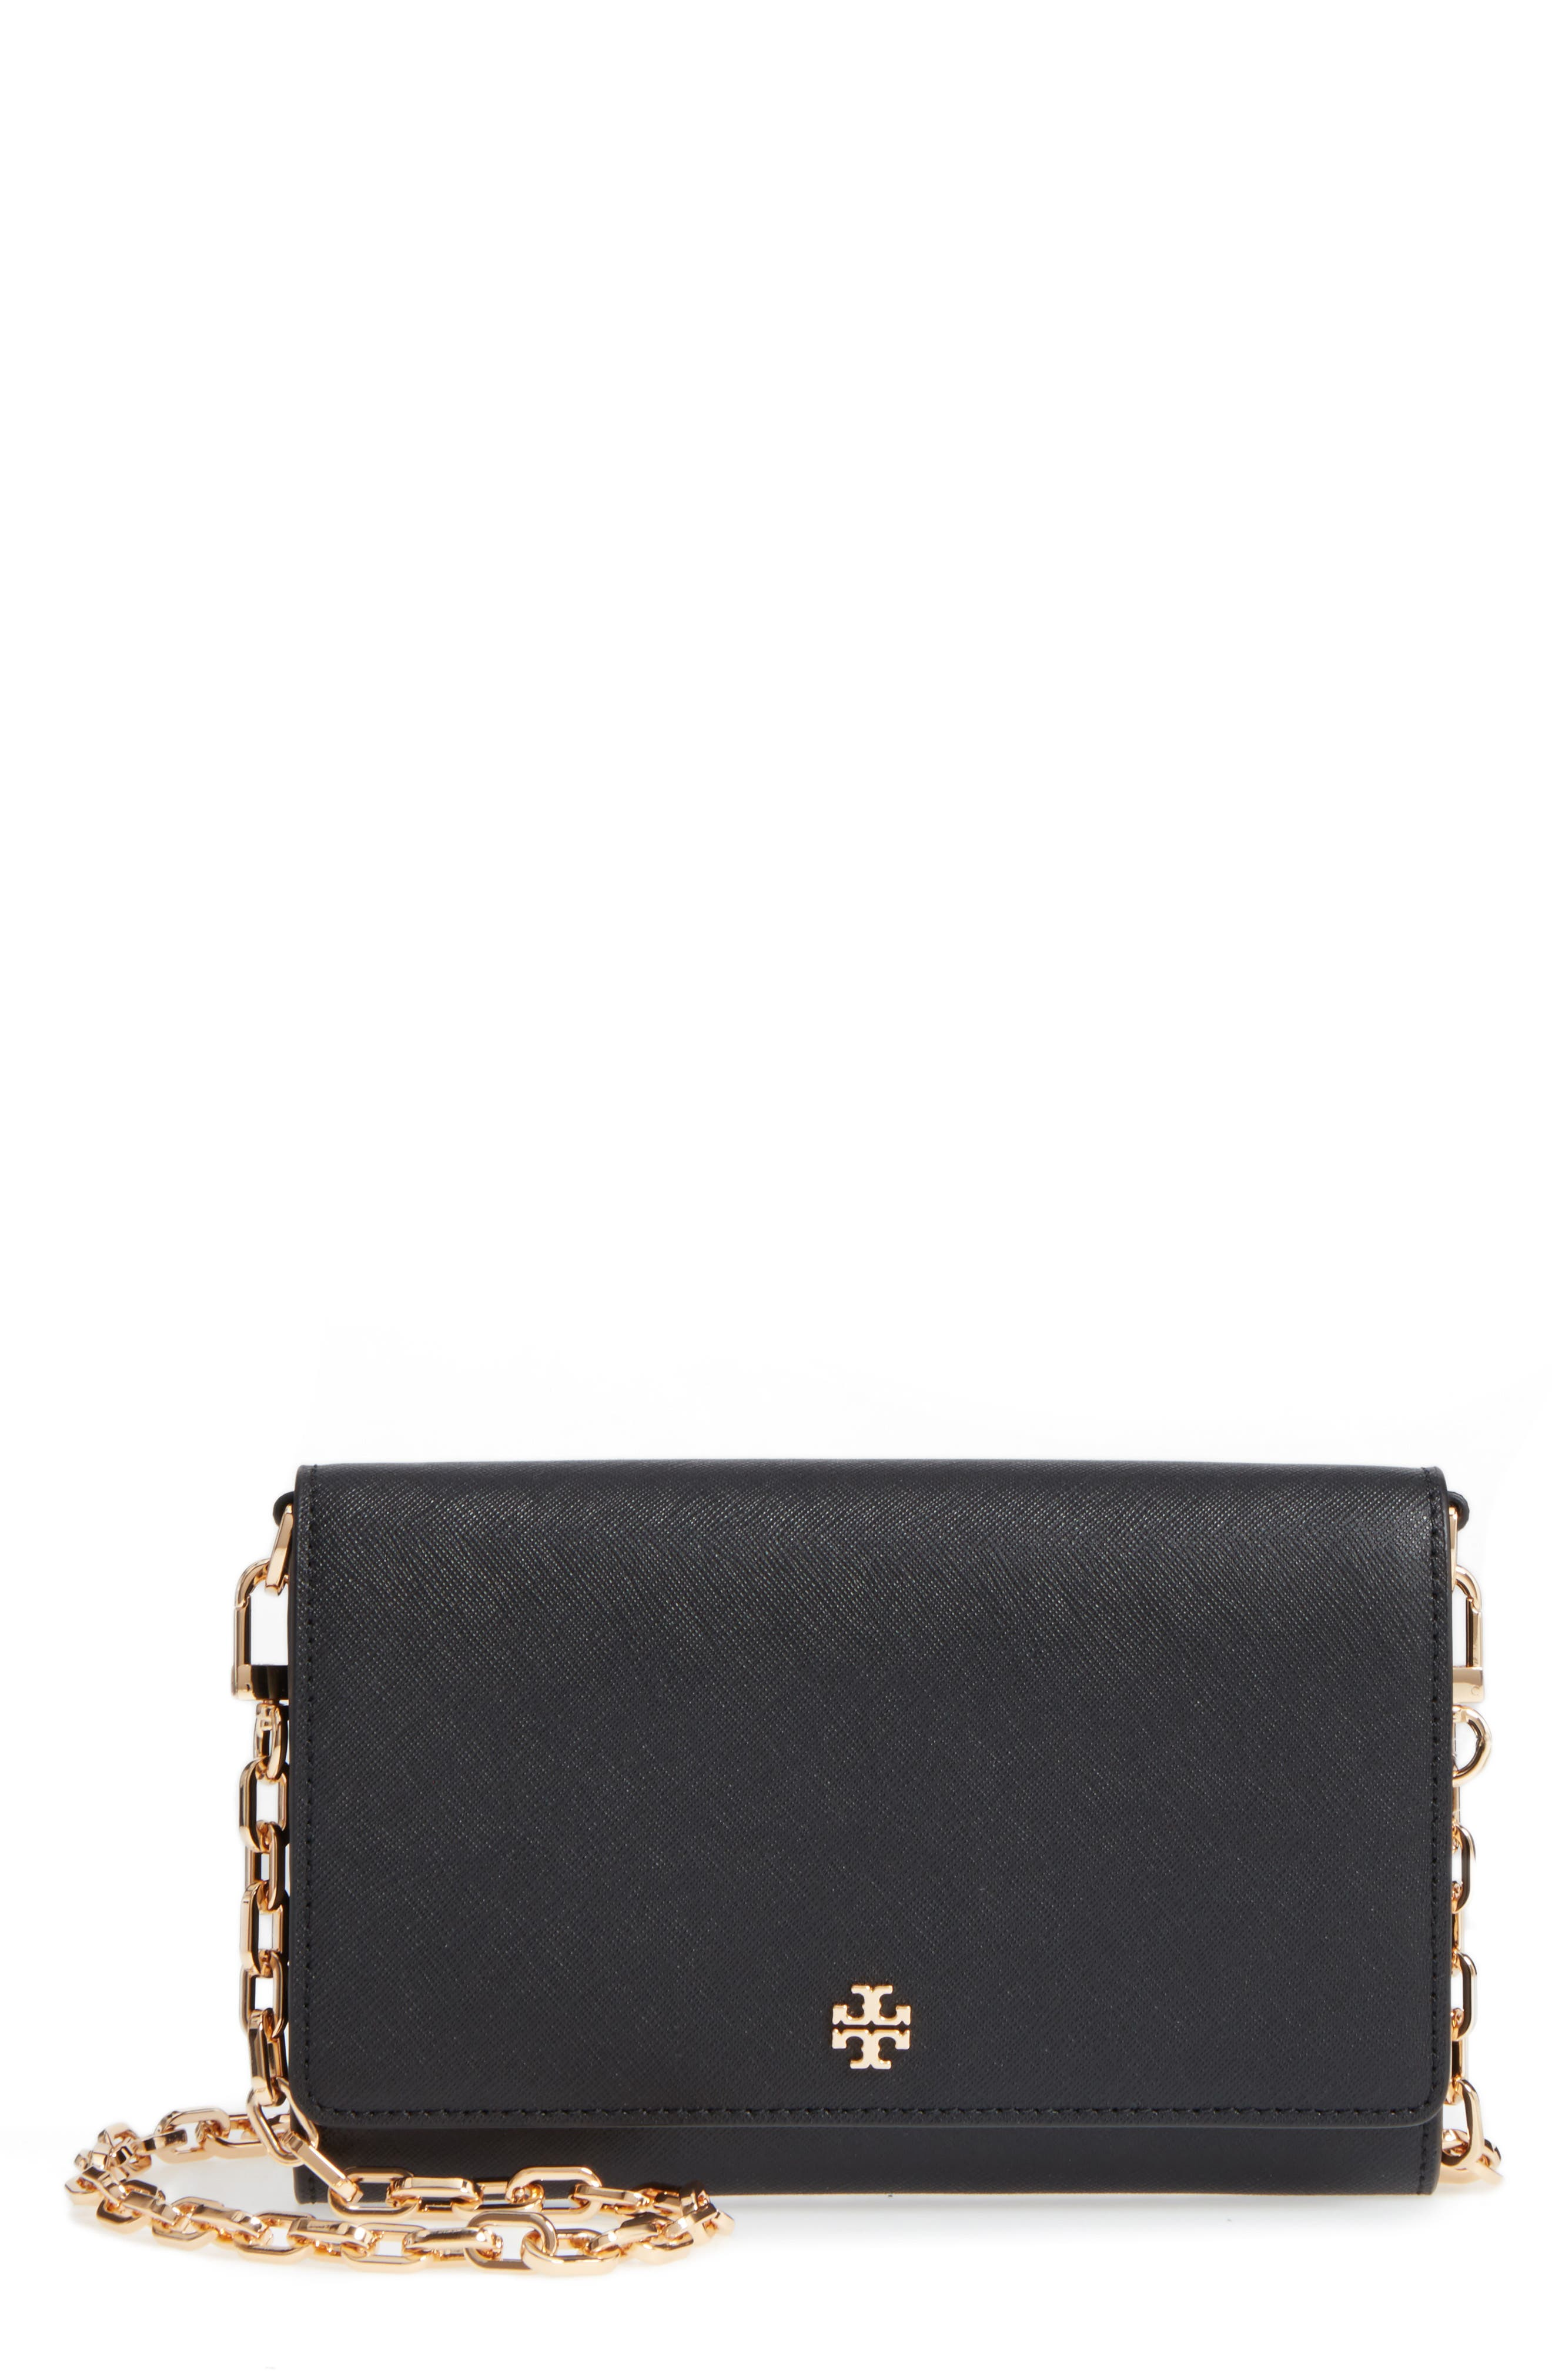 TORY BURCH 'Robinson' Leather Wallet on a Chain, Main, color, 001